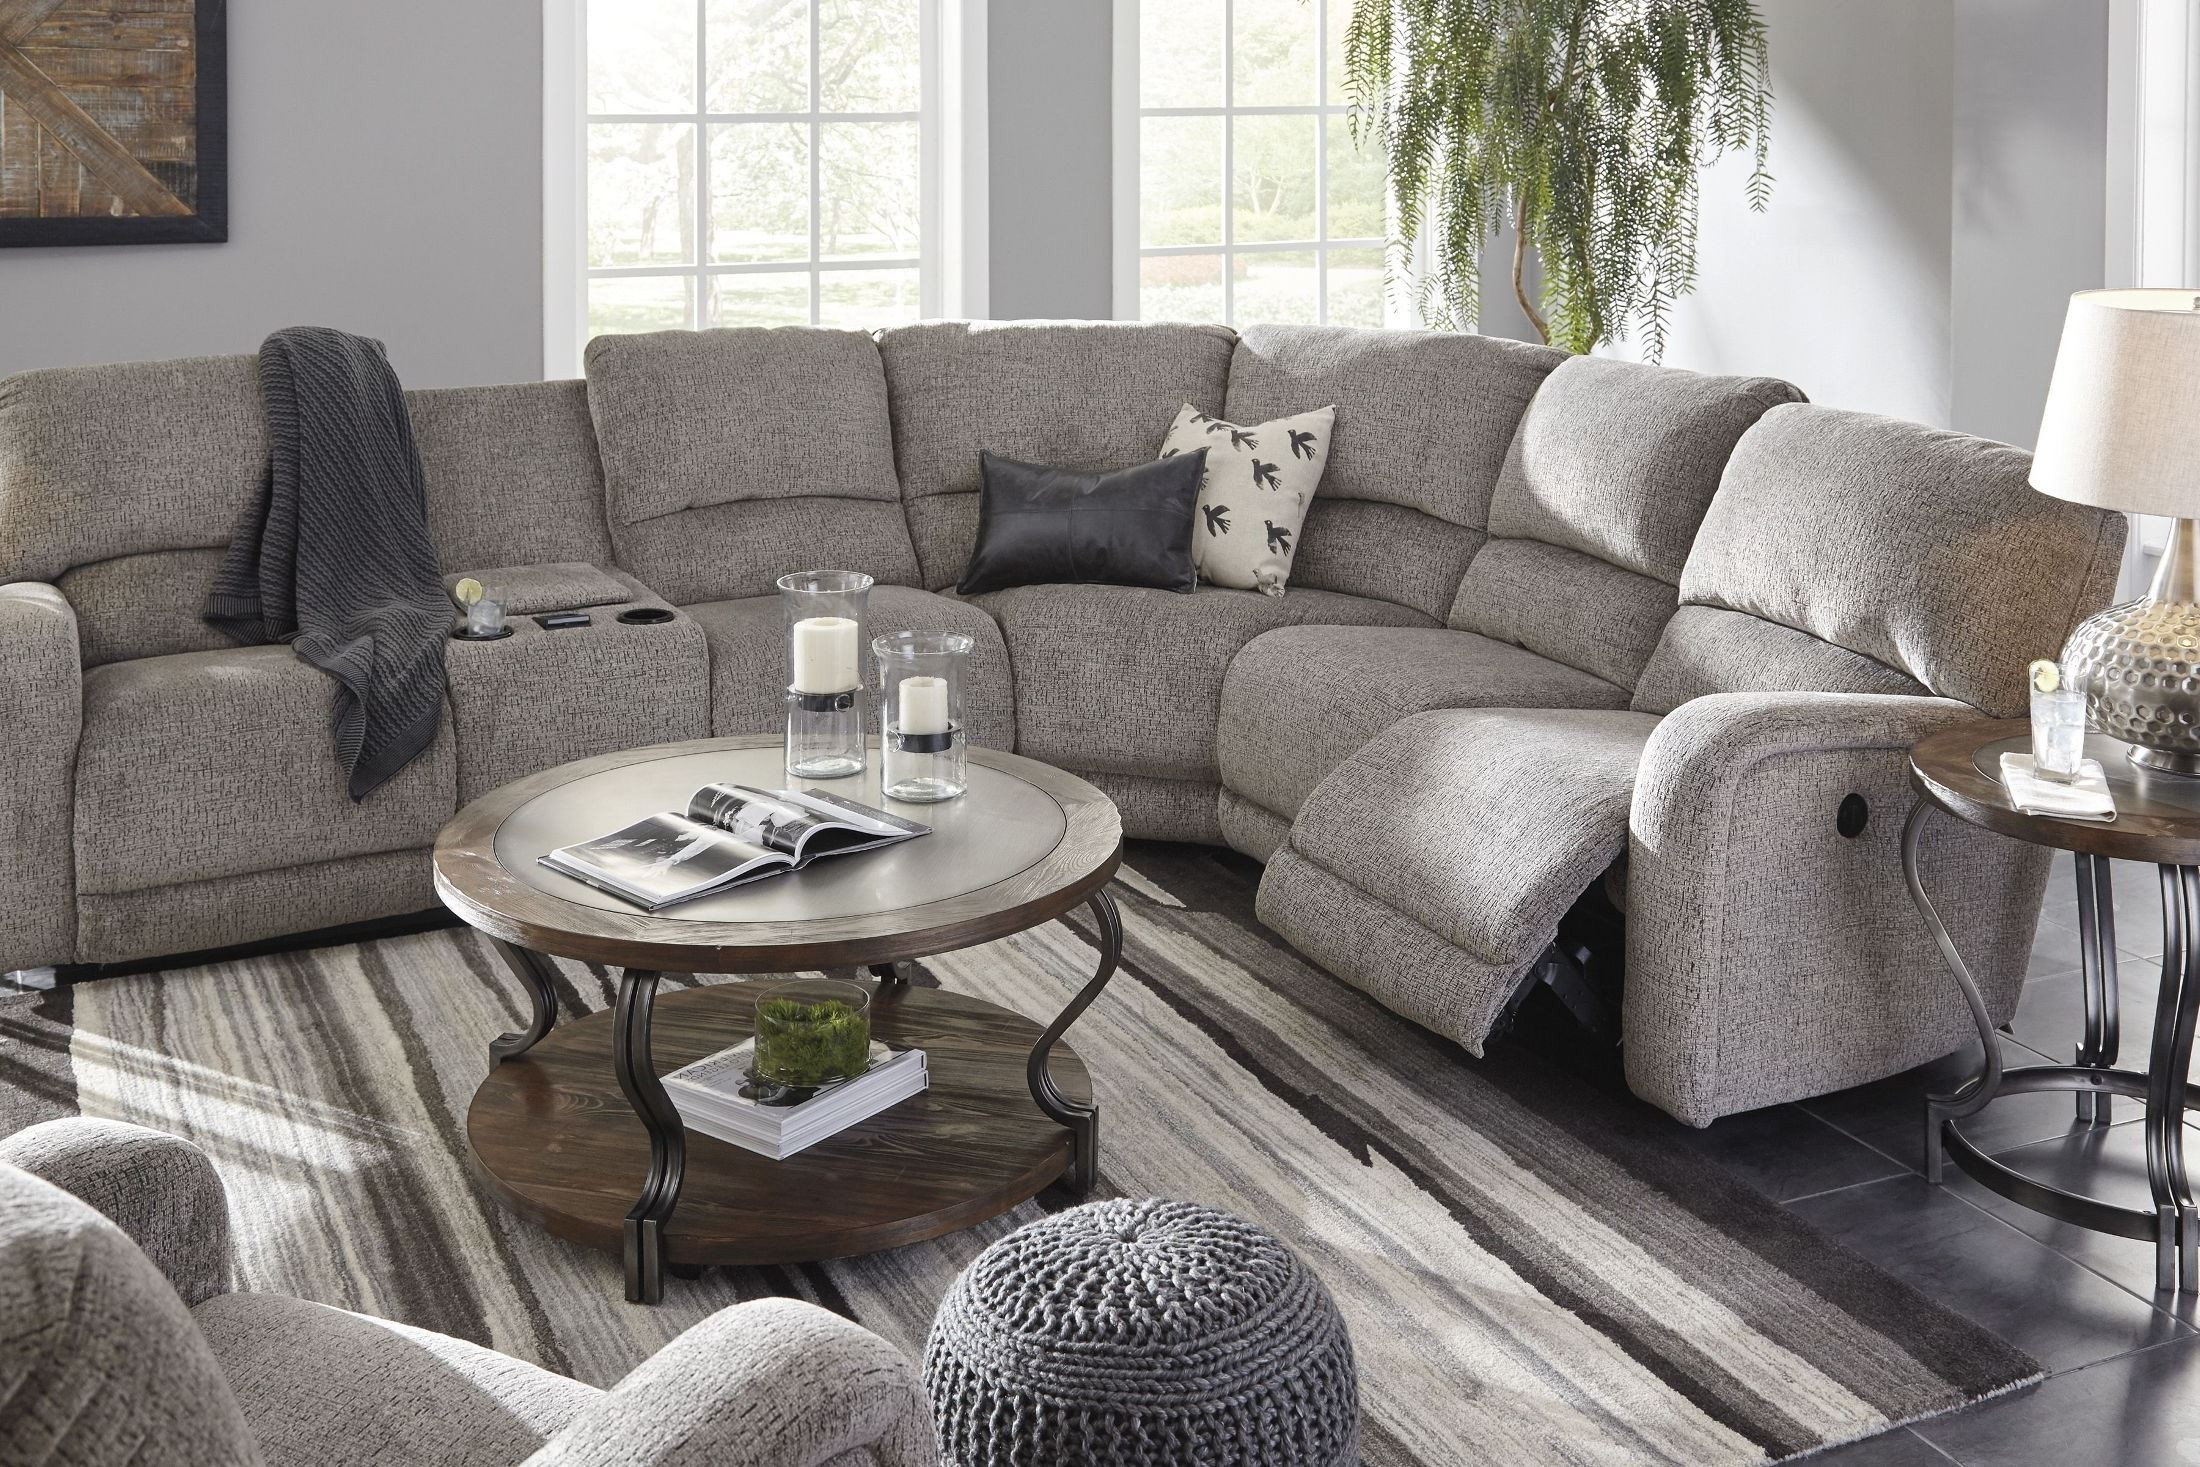 Pittsfield Fossil Raf Power Reclining Sectional From Ashley Coleman Furniture